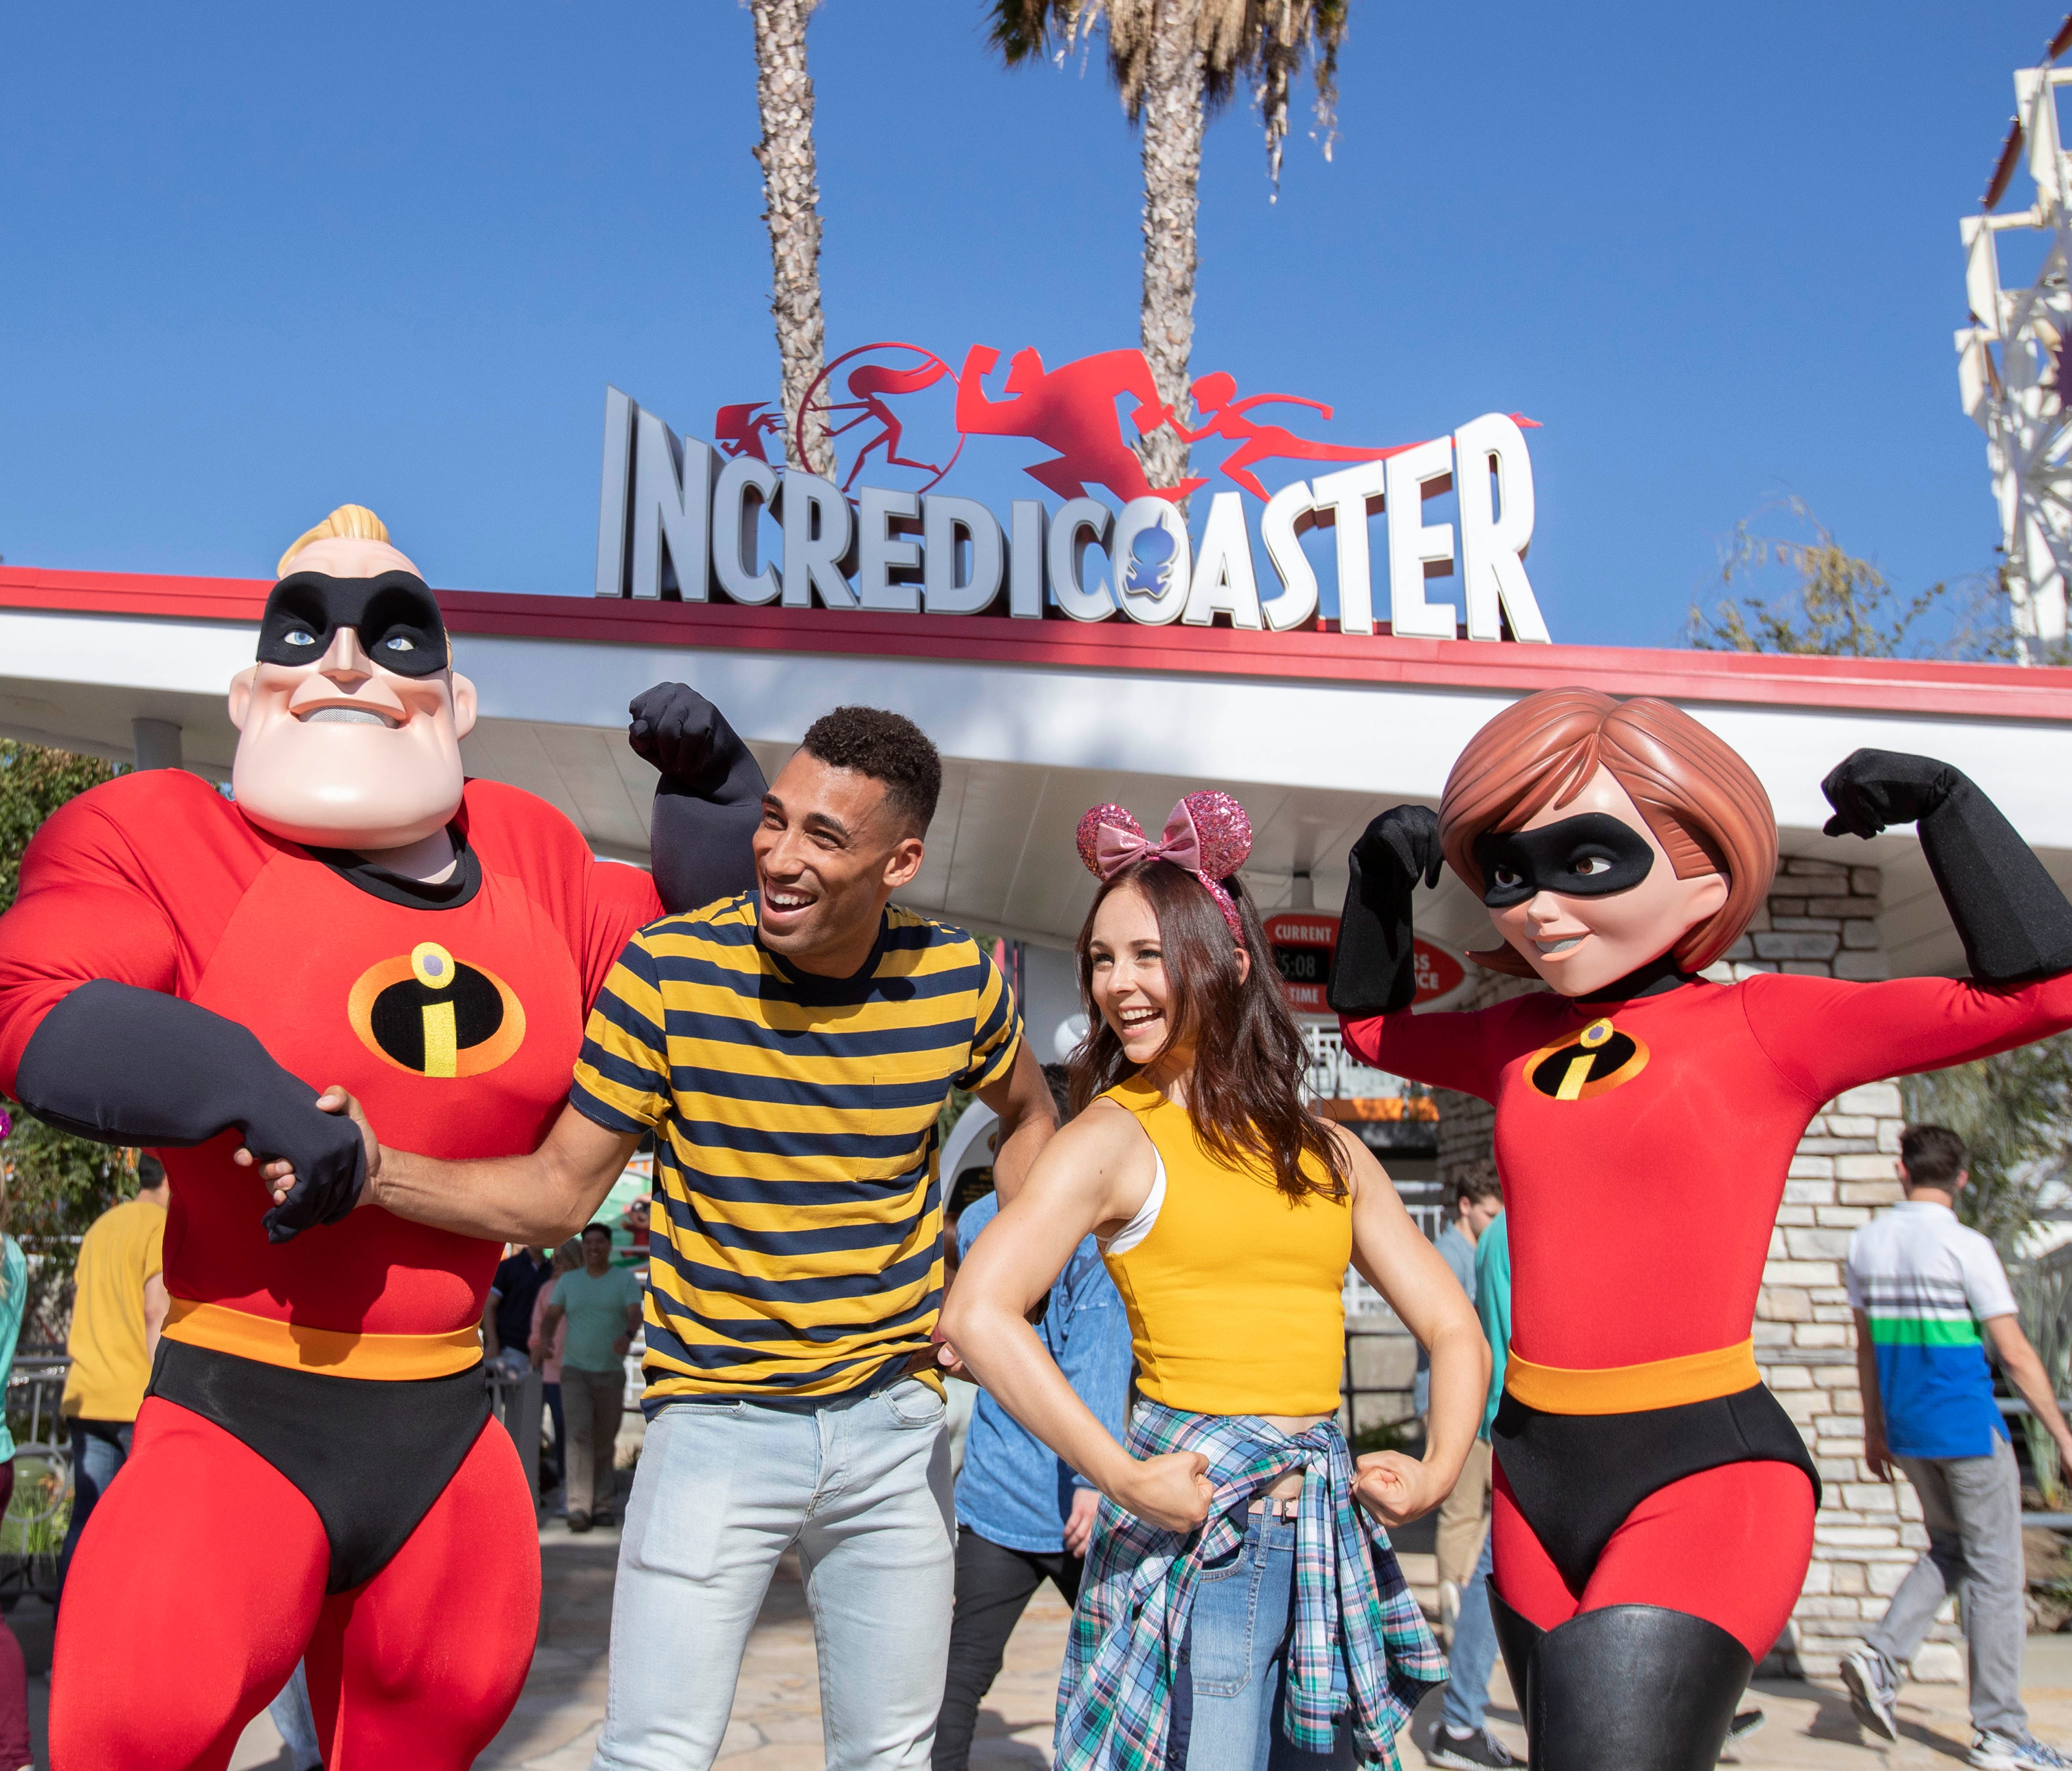 The thrilling Incredicoaster opens June 23, 2018 at Disney California Adventure Park, bringing guests the first ride-through attraction in the world to feature characters from Disney•Pixar's